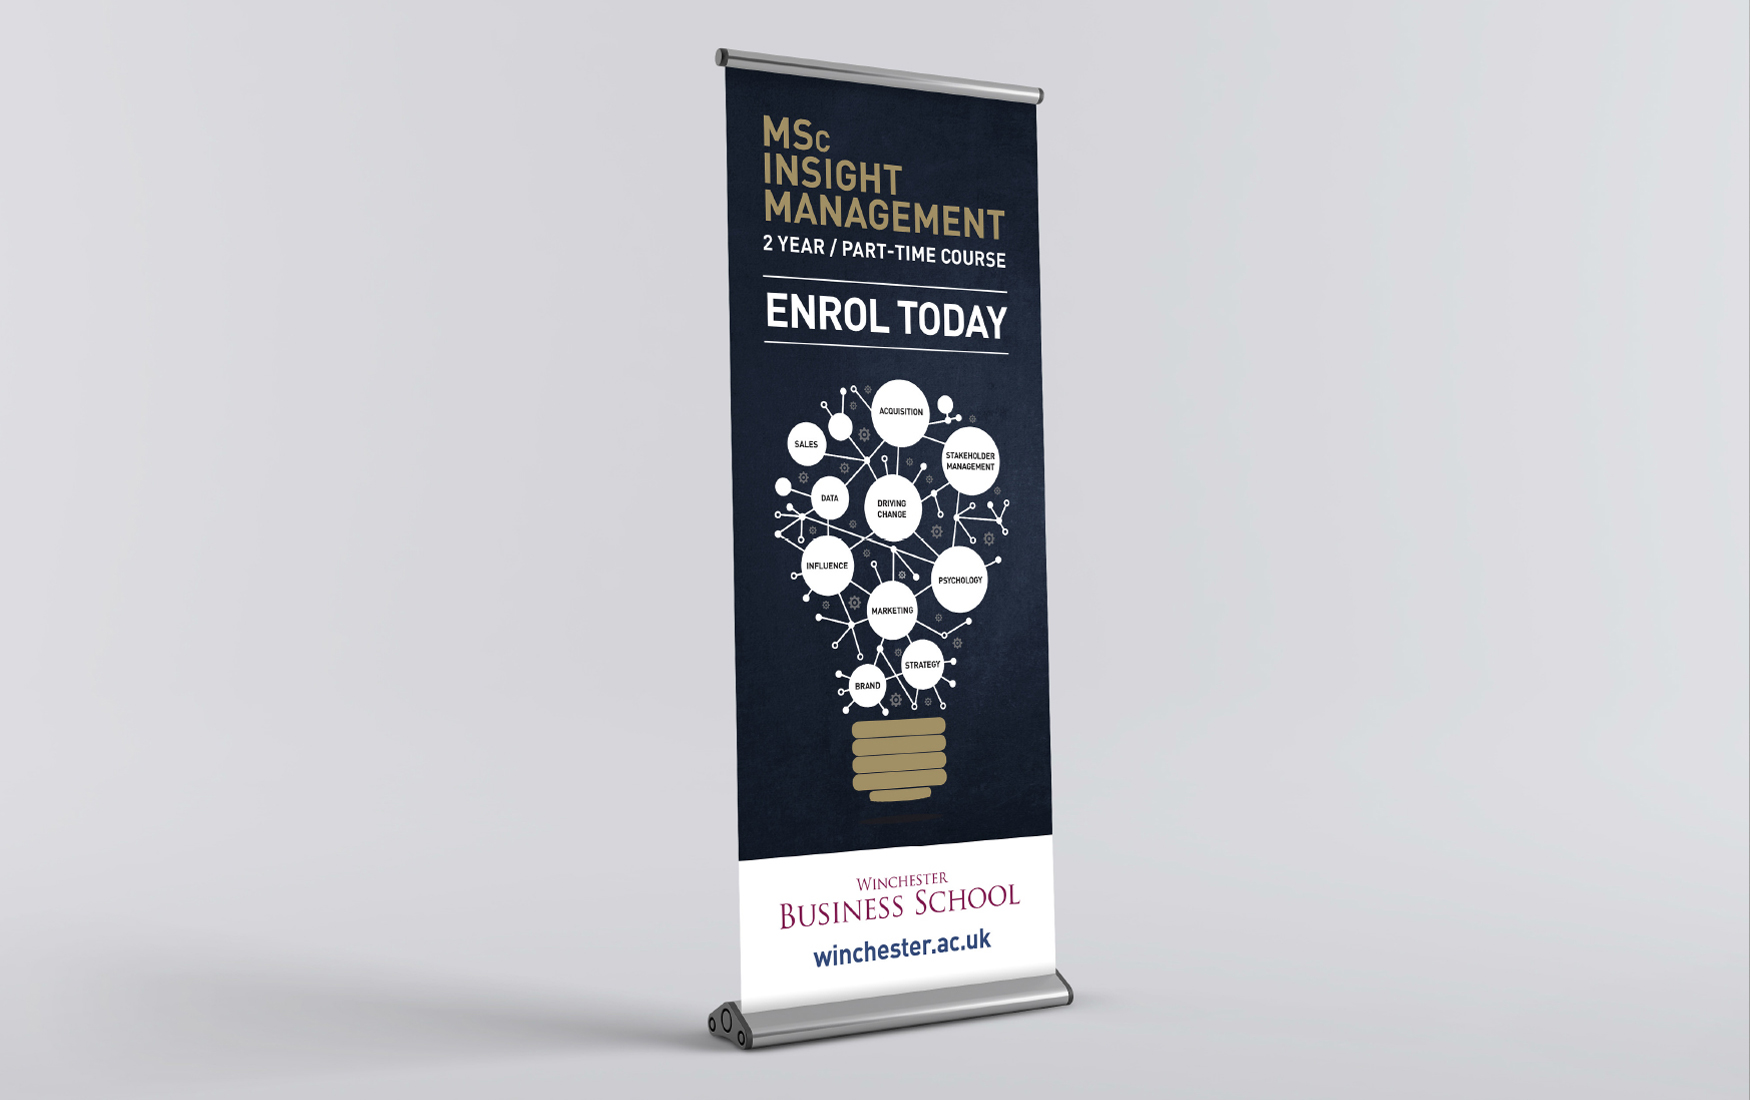 insight management